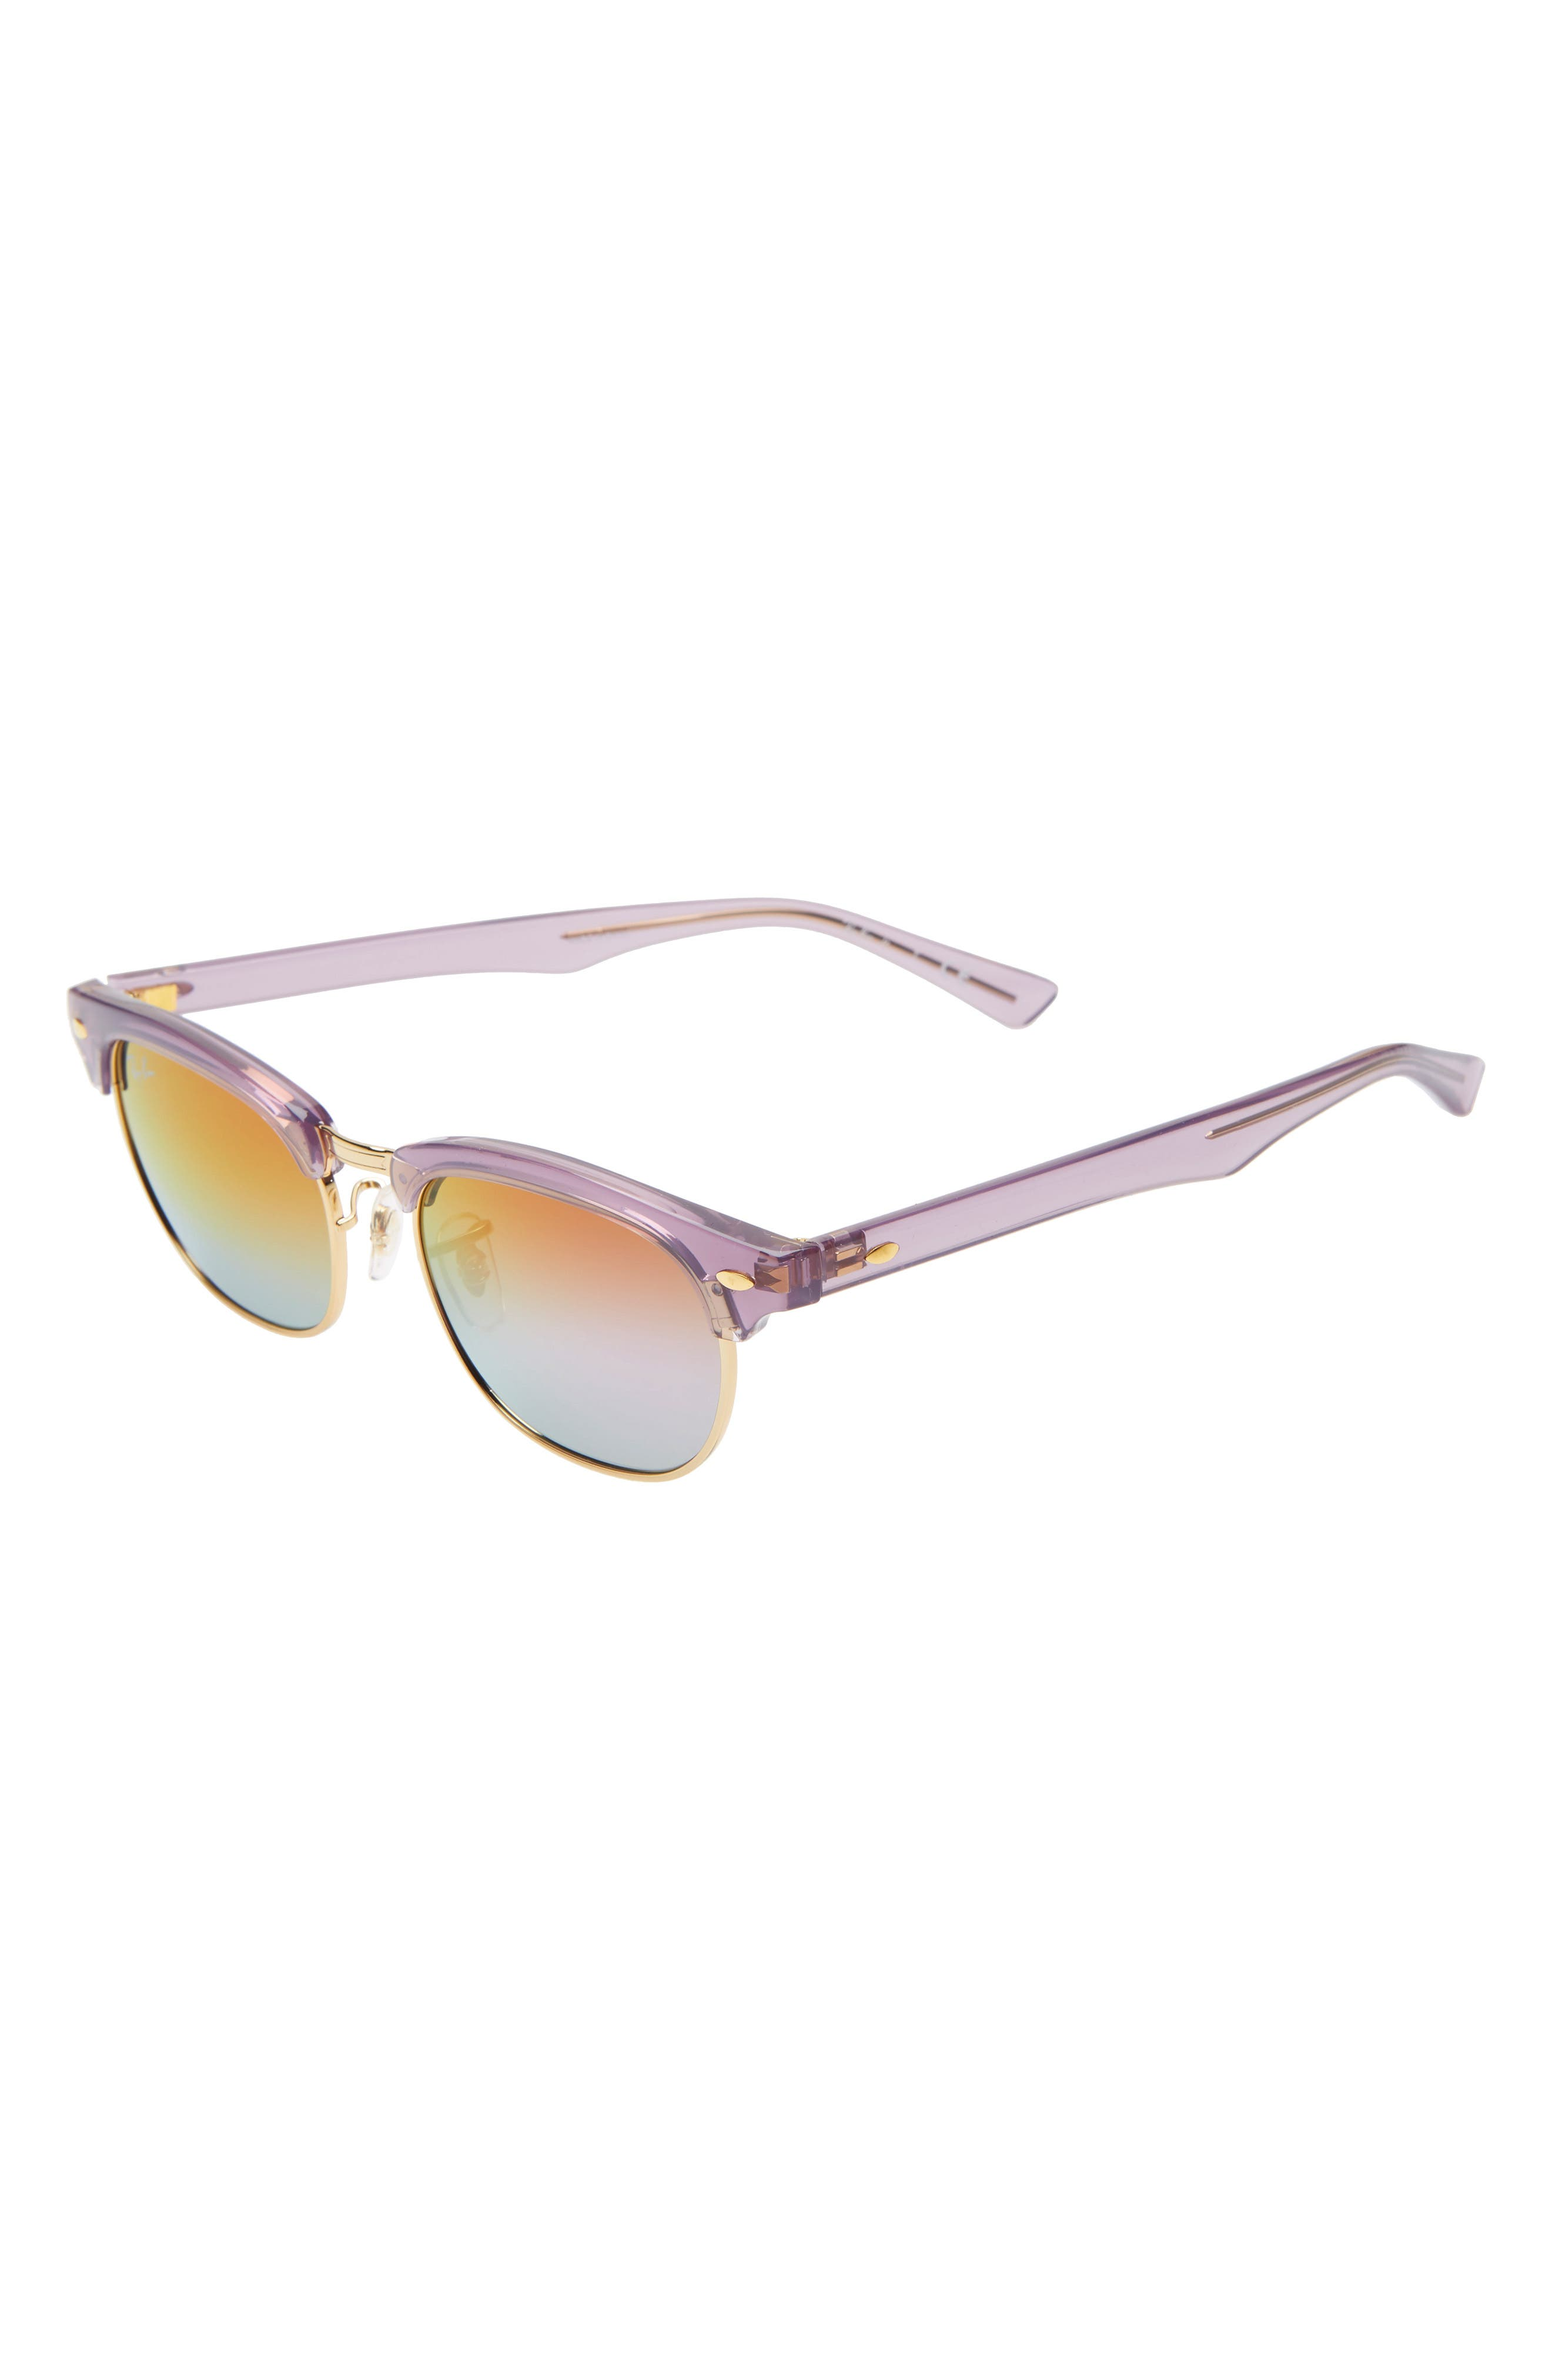 Ray-Ban Junior Clubmaster 47Mm Sunglasses - Violet/ Violet Gradient Mirror